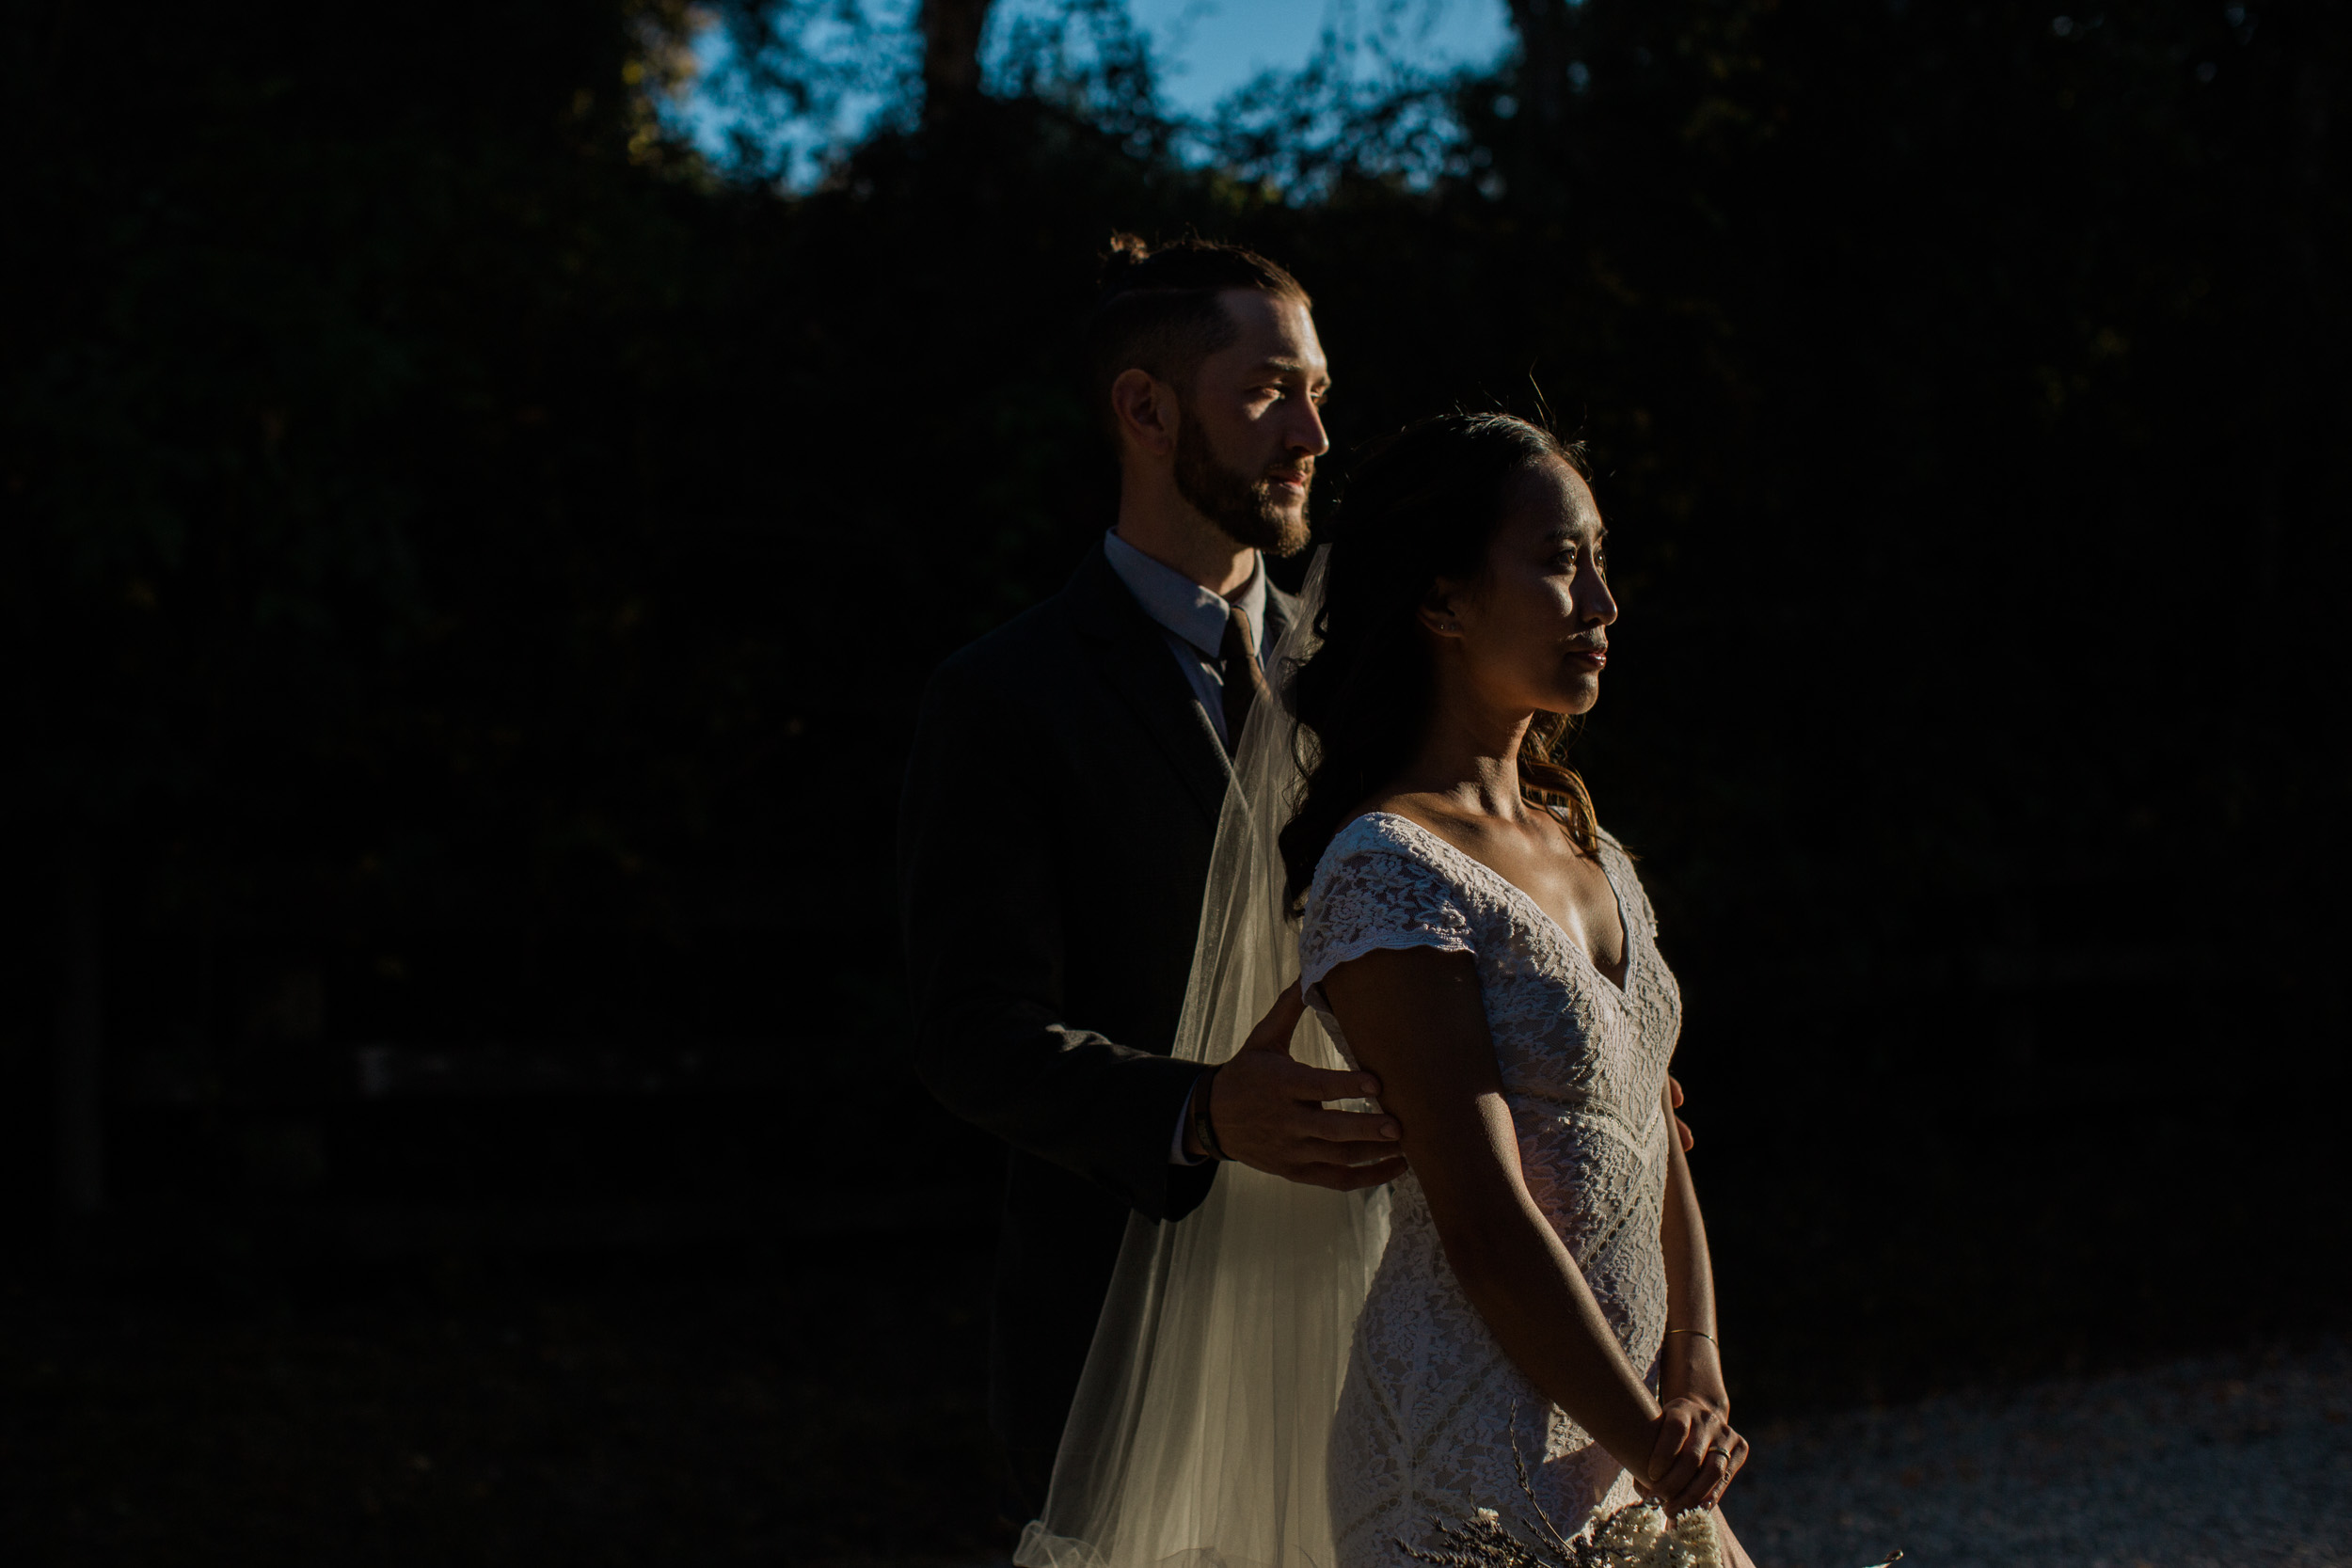 BKM-Photography-Russian-River-Wedding-Redwoods-Guerneville-California-Destination-Wedding-Photographer-0094.jpg